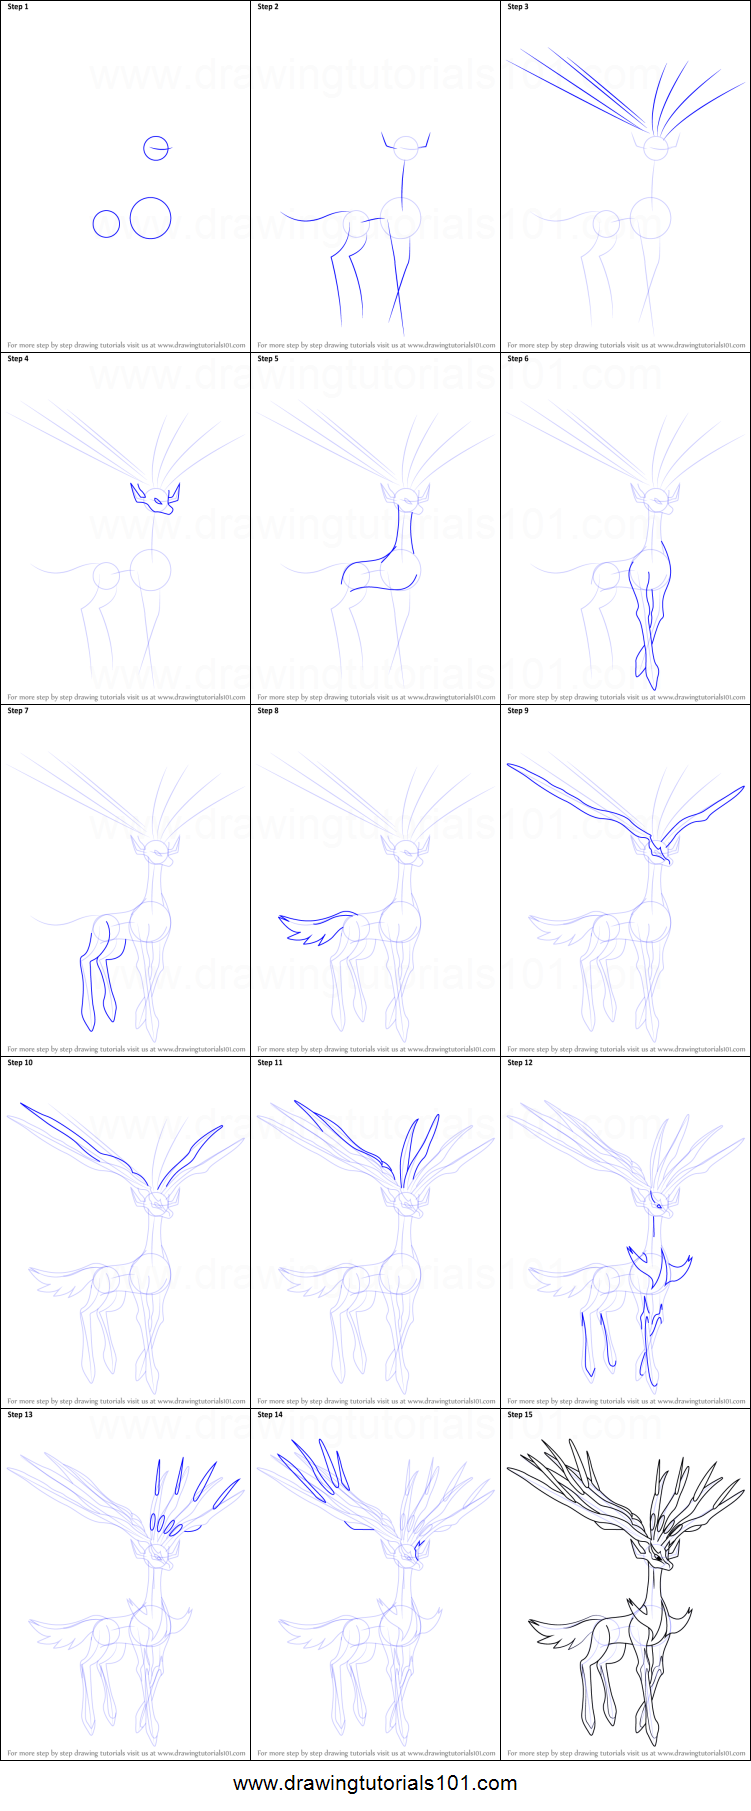 how to draw xerneas from pokemon printable step by step drawing sheet   drawingtutorials101 com